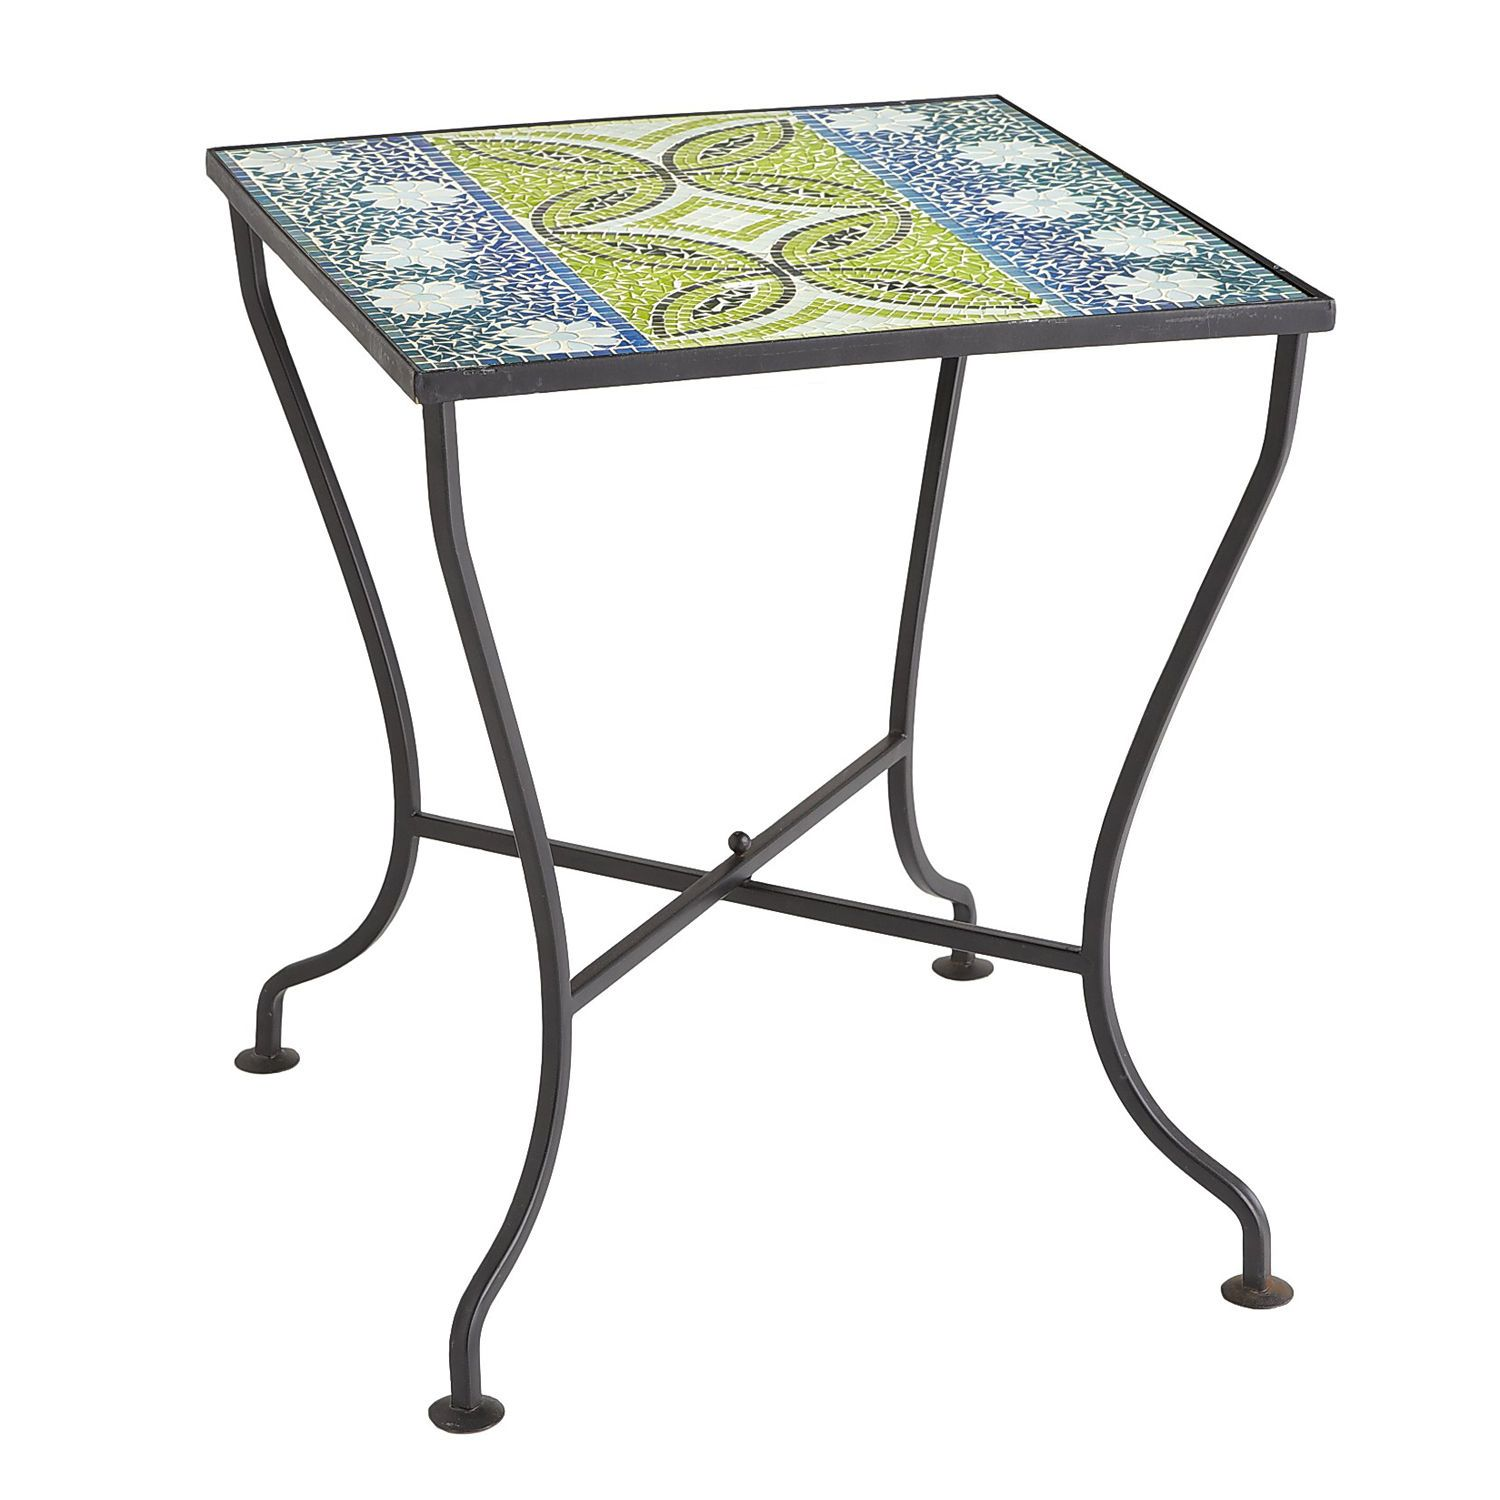 lani mosaic accent table pier imports patio outdoor side laflorn chairside end uttermost samuelle wooden espresso wood tables rustic coffee and occasional furniture target